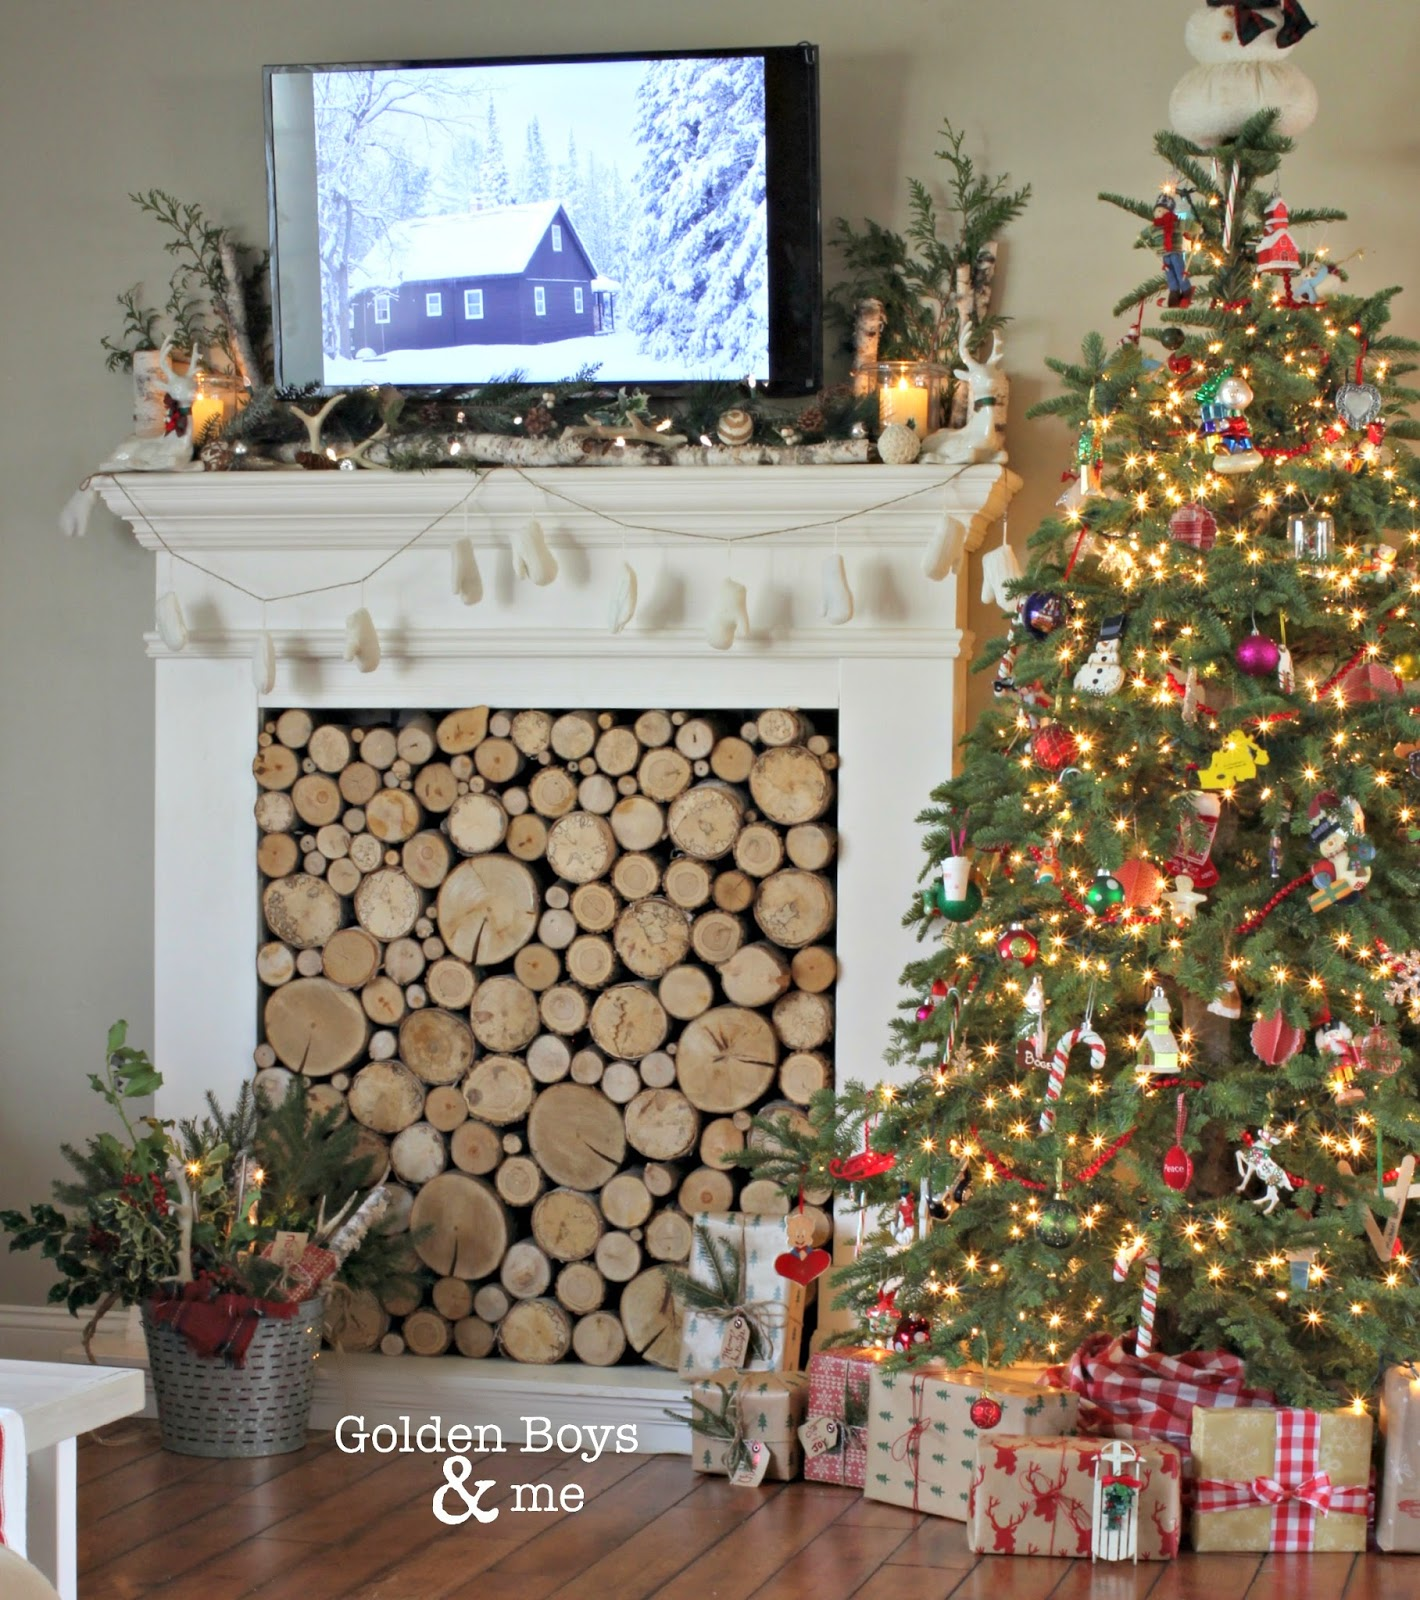 golden boys and me holiday home tour 2014